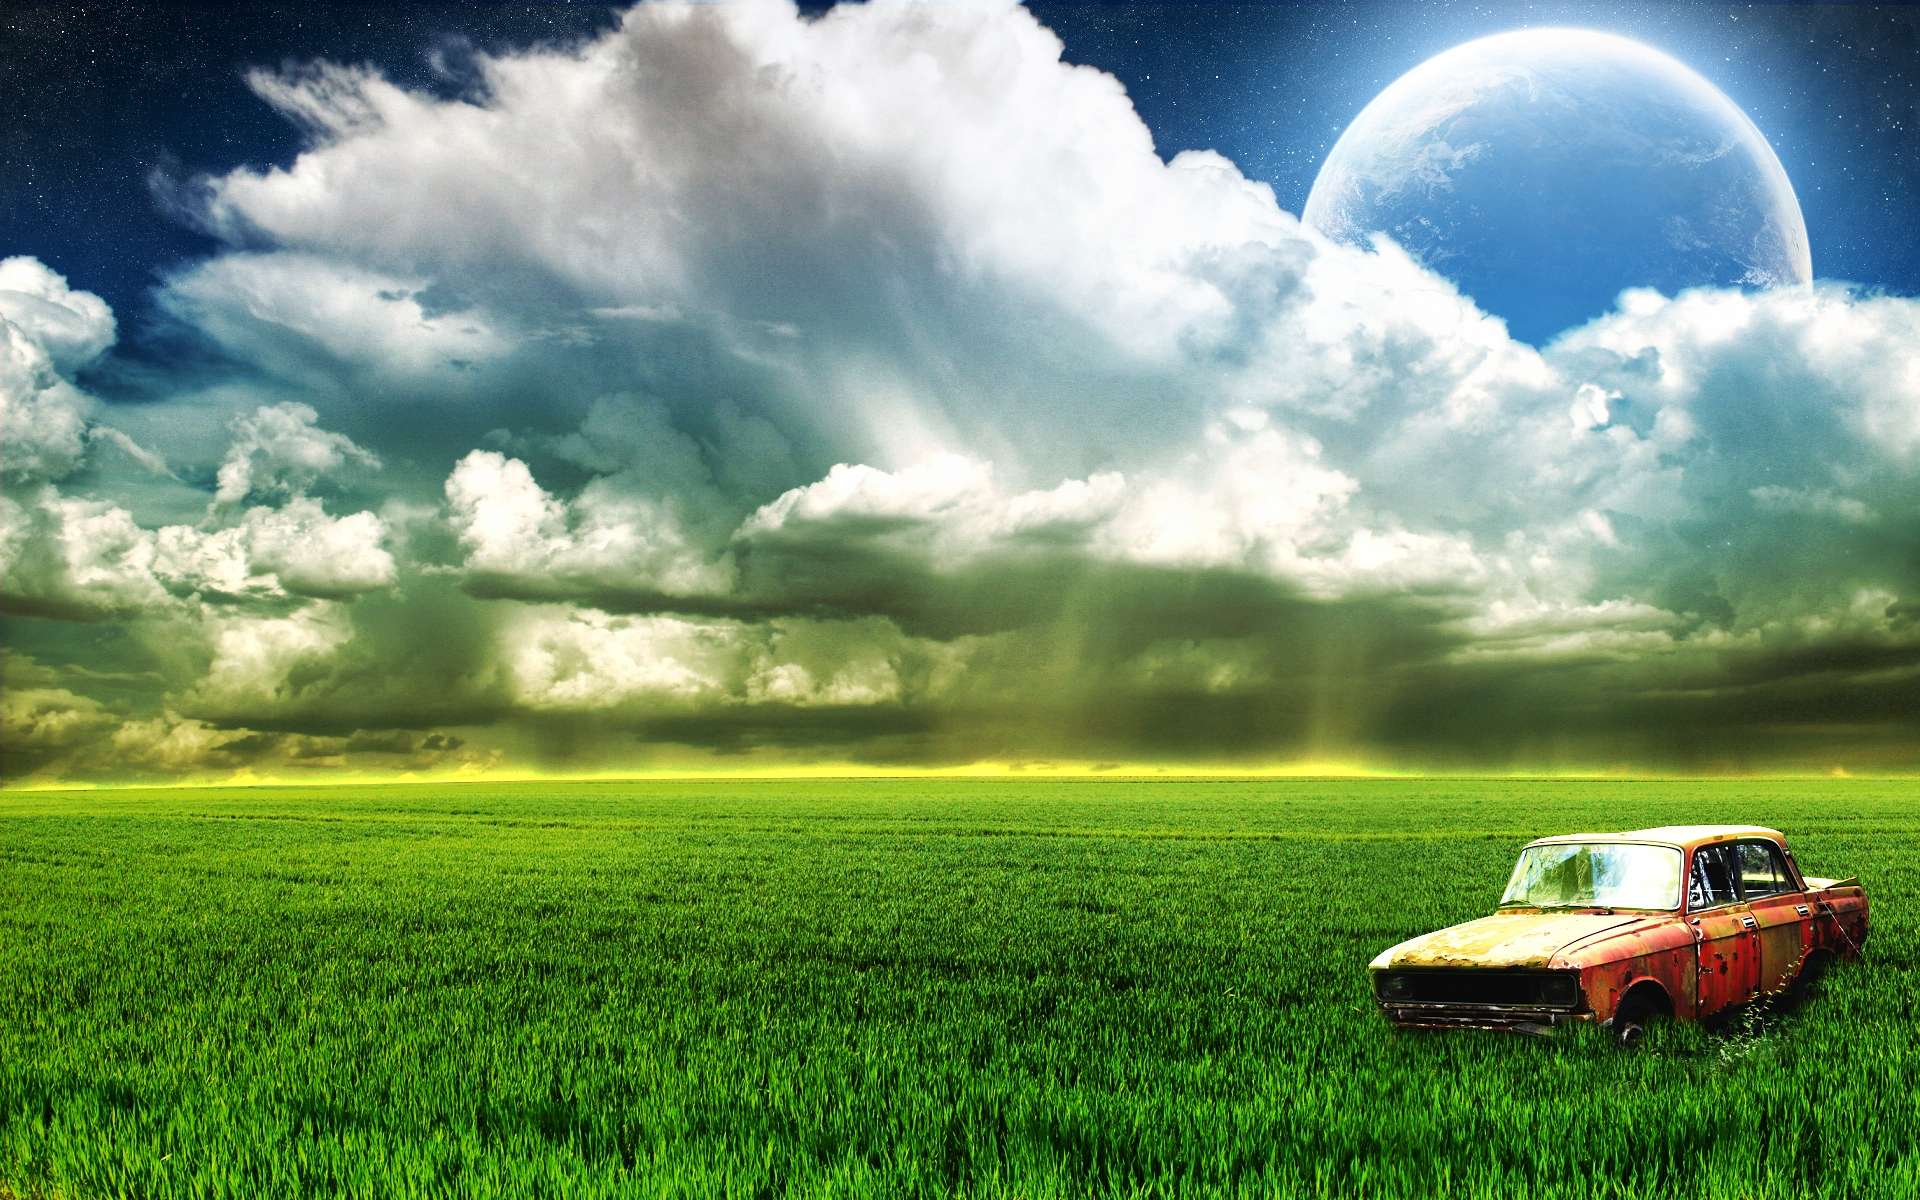 Farm Old Car Moon Clouds Wallpaper